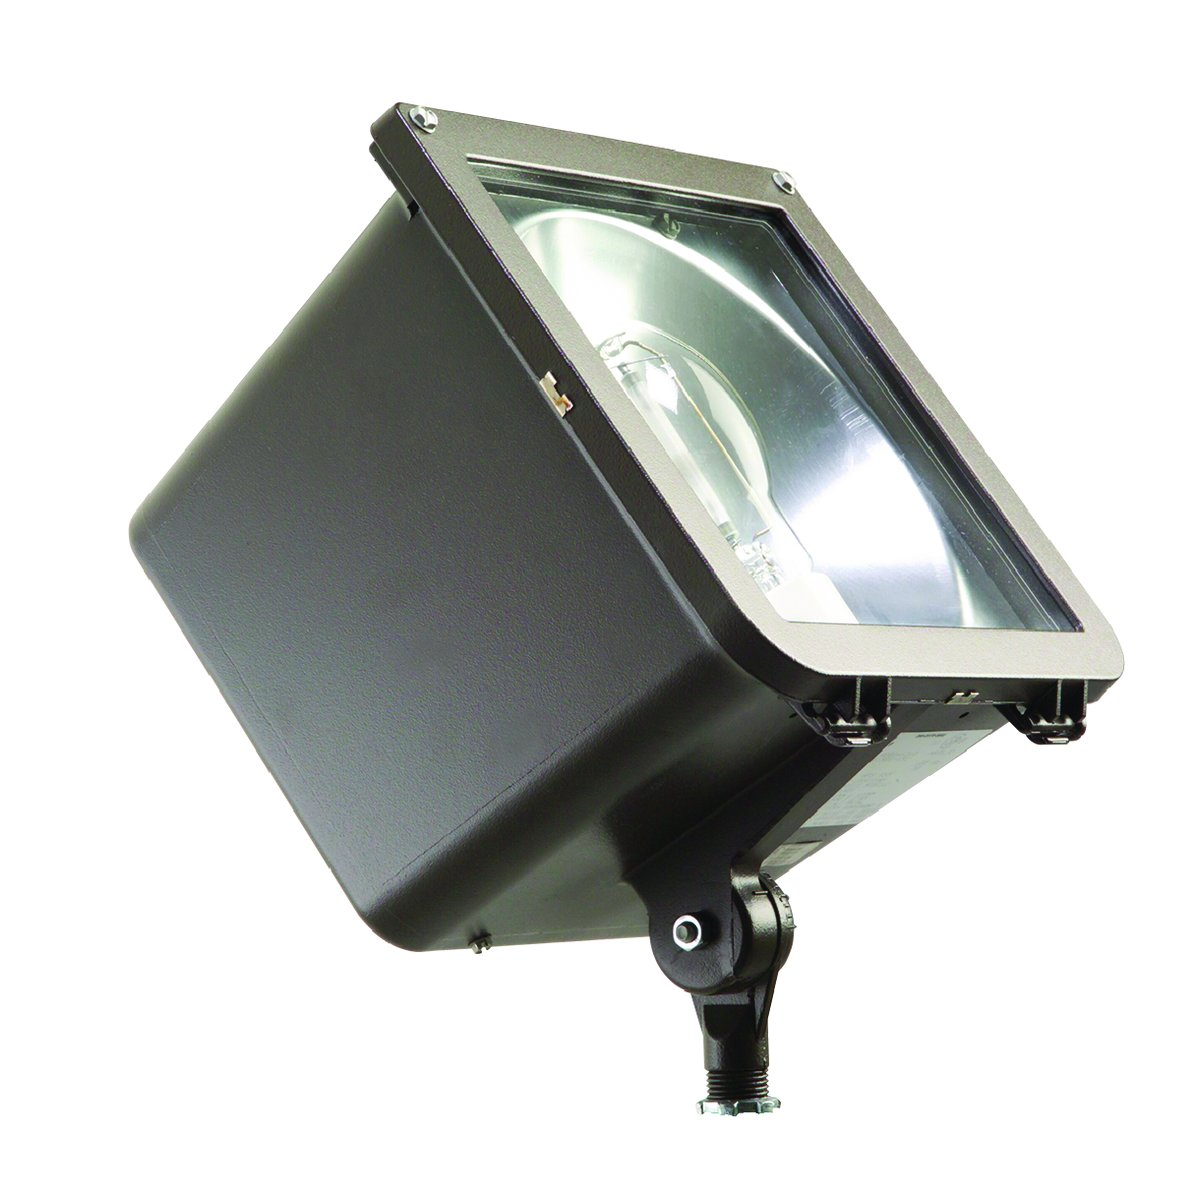 Hubbell Outdoor MIC-0150P-338 Microliter Compact 150W PS Quad-Tap Narrow Beam Floodlight with Lamp, Dark Bronze